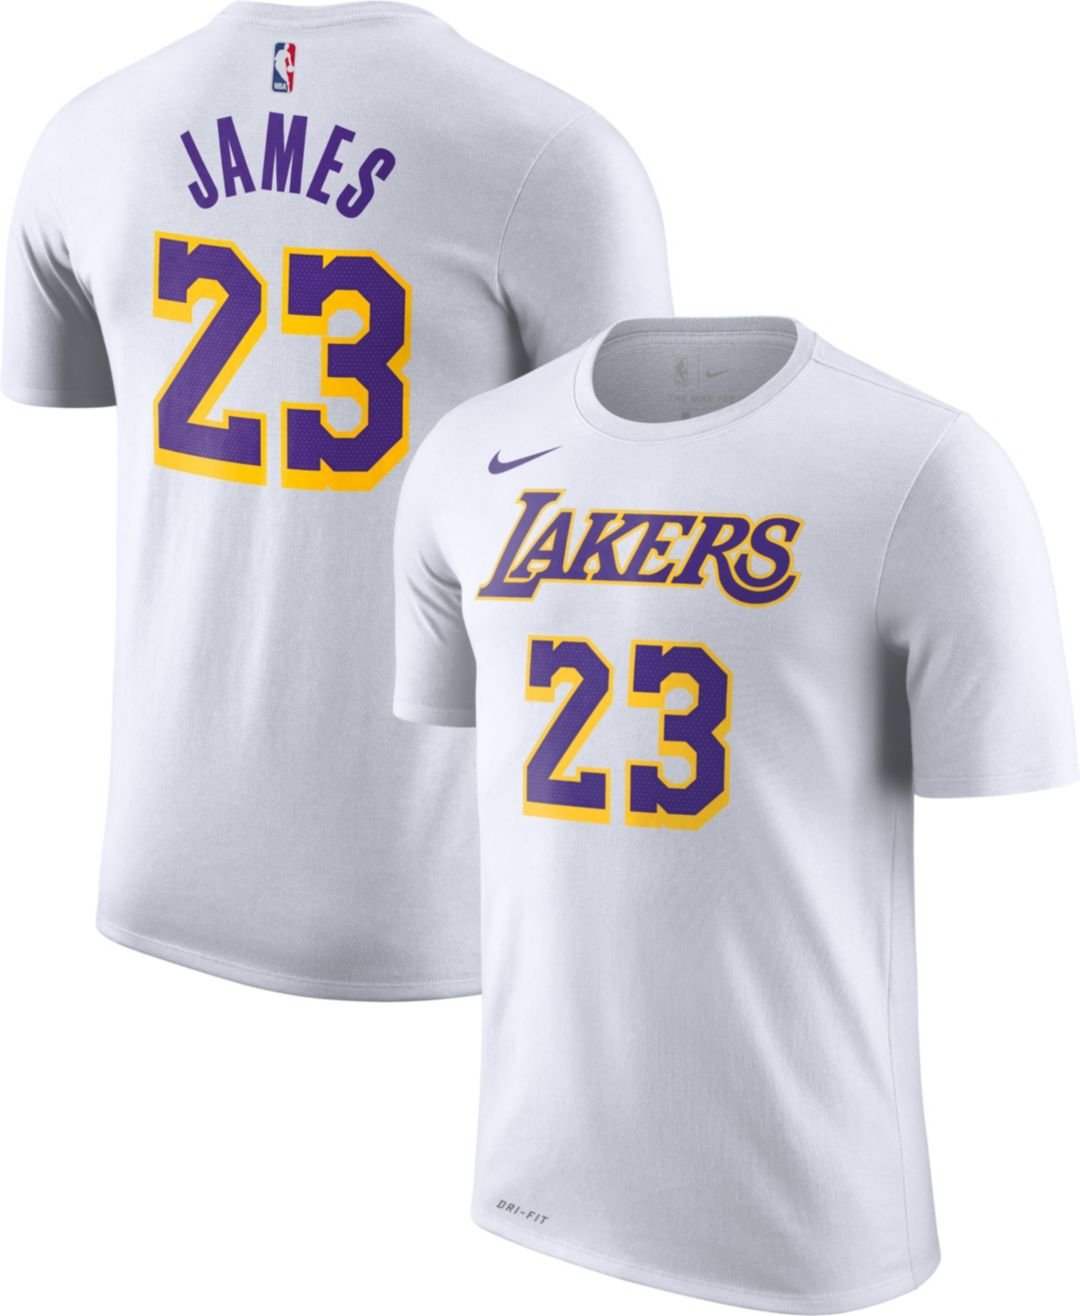 022f1300d Nike Youth Los Angeles Lakers LeBron James Dri-FIT White T-Shirt.  noImageFound. Previous